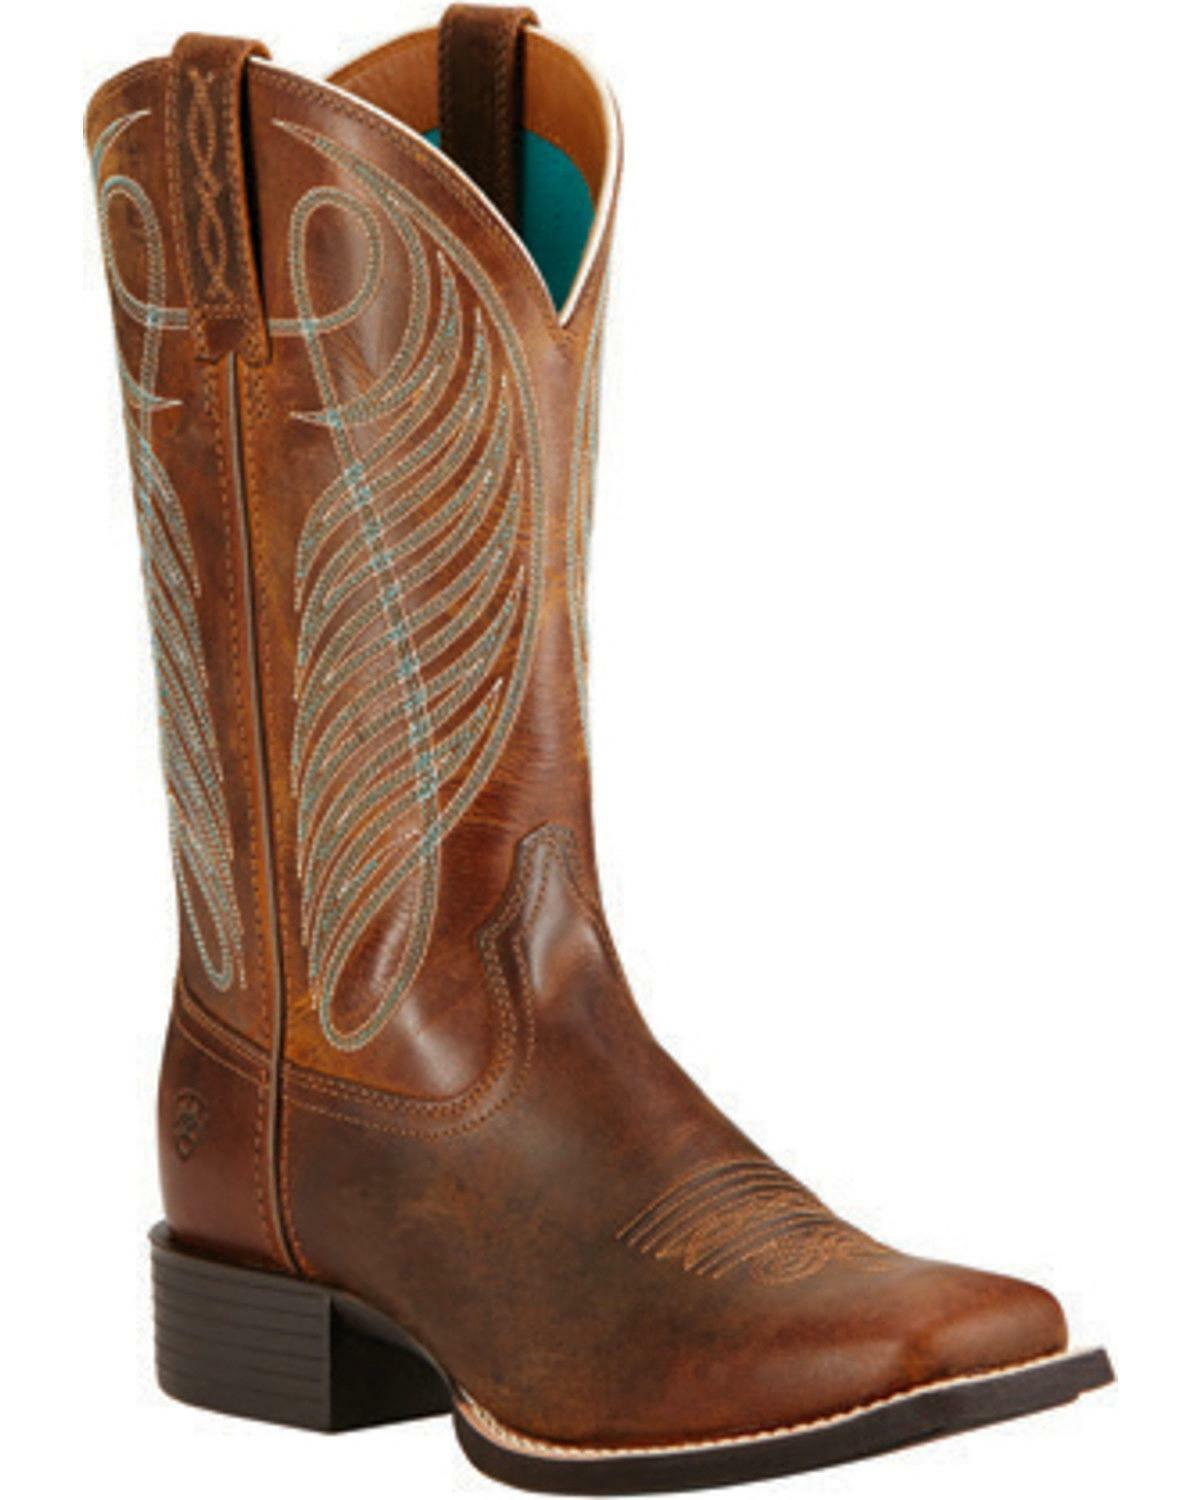 WOMEN'S ARIAT ROUND UP SQUARE TOE TOE TOE WESTERN BOOTS POWDER BROWN 10018528 d6b36d